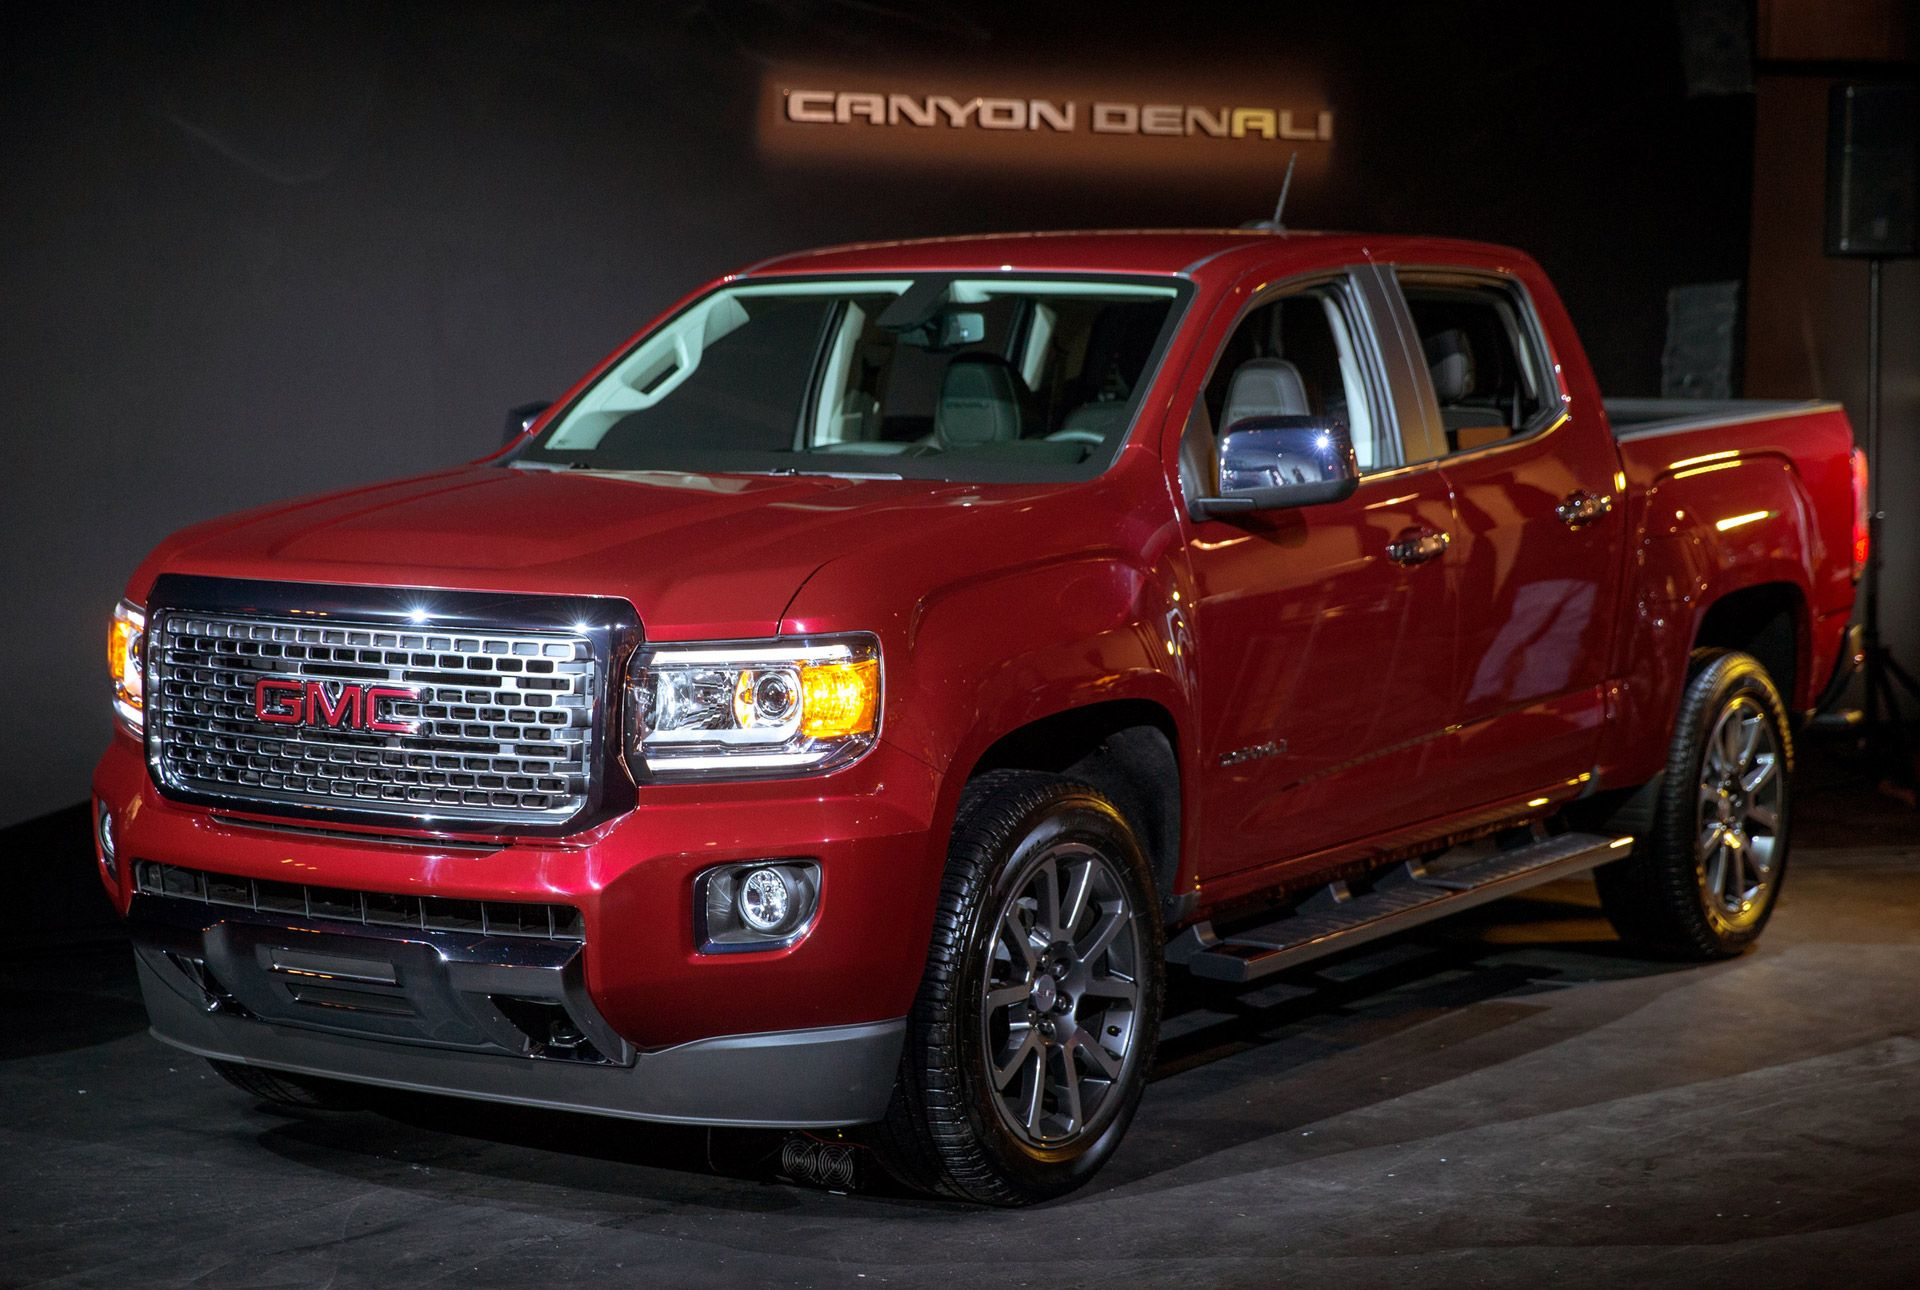 2017 Gmc Canyon Denali Release Date Review For Sale Diesel Gmc Canyon Canyon Diesel Gmc